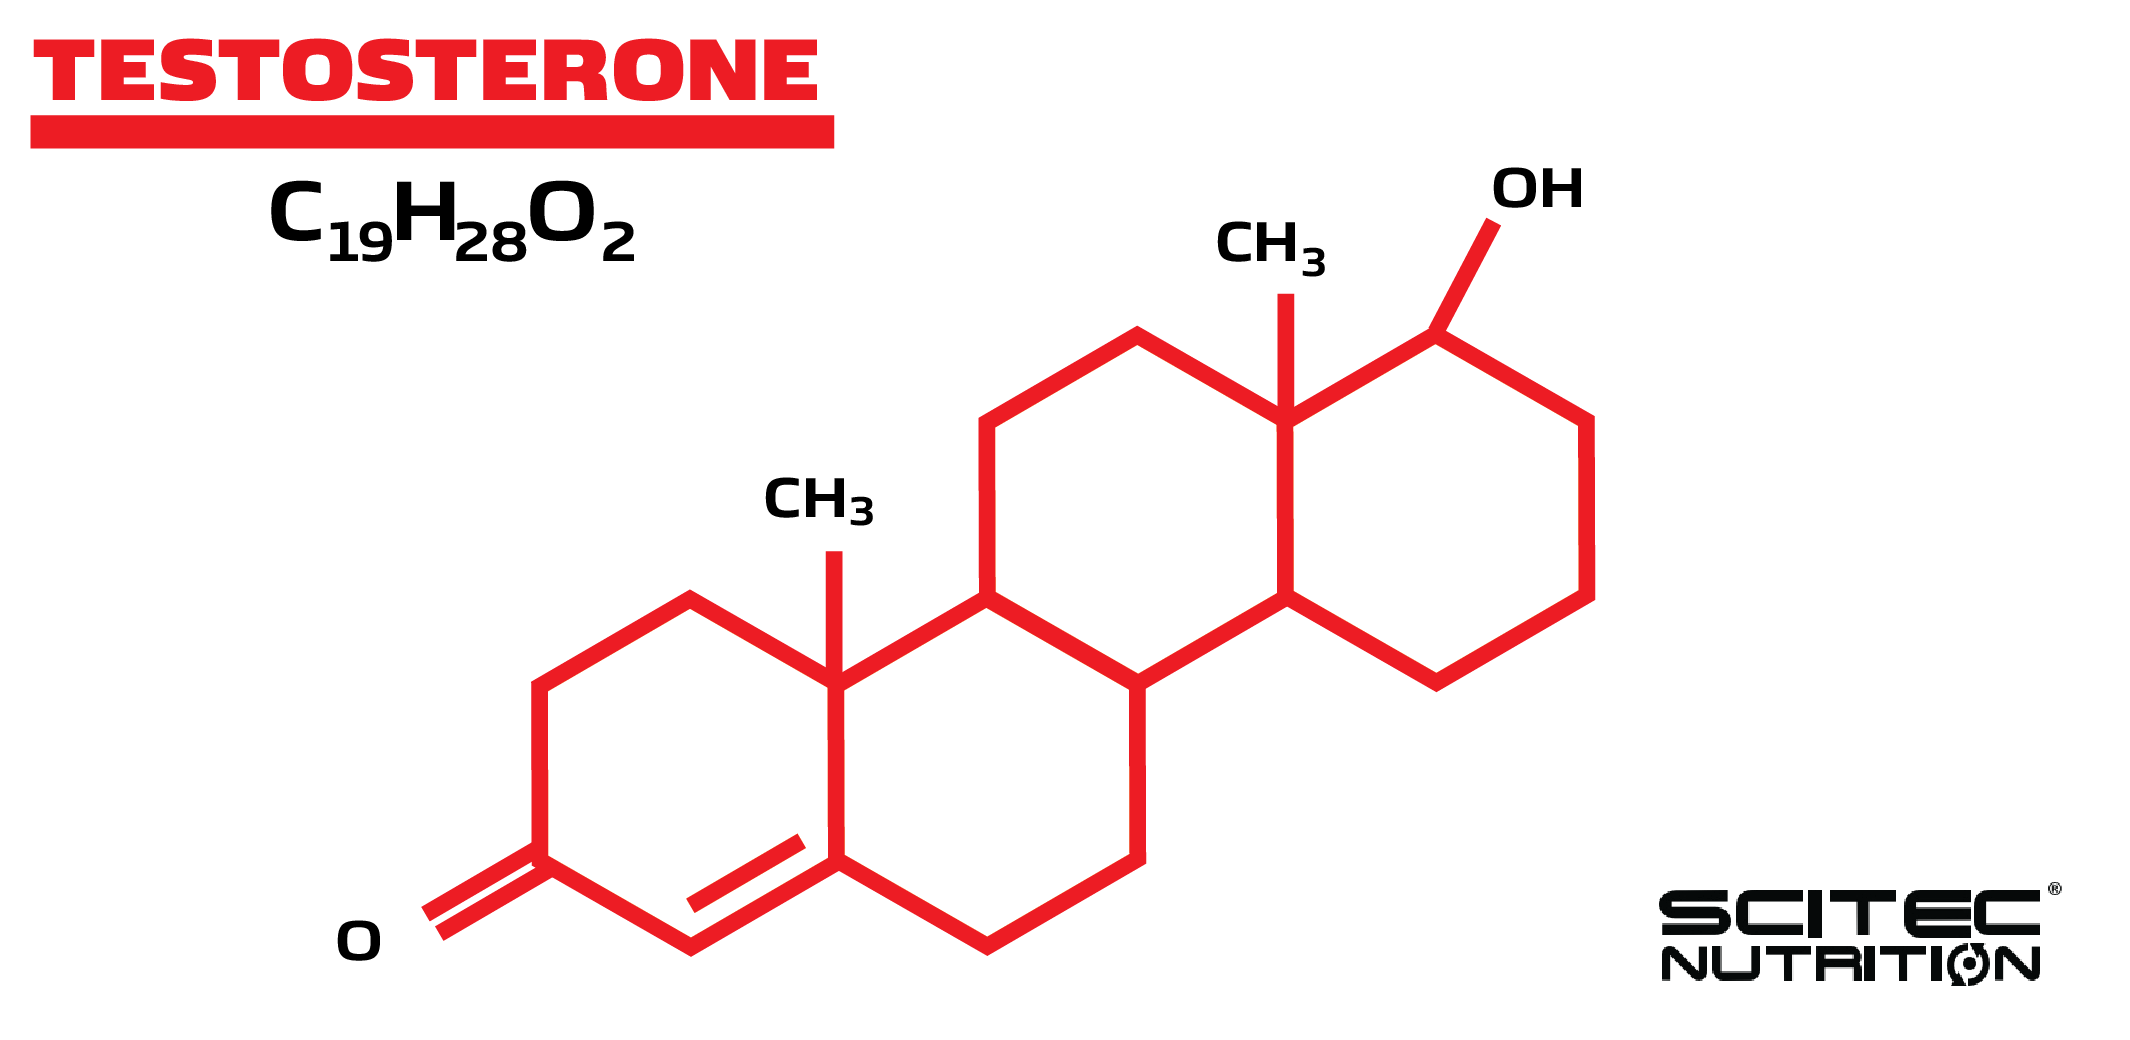 Graphic of chemical structure of testosterone